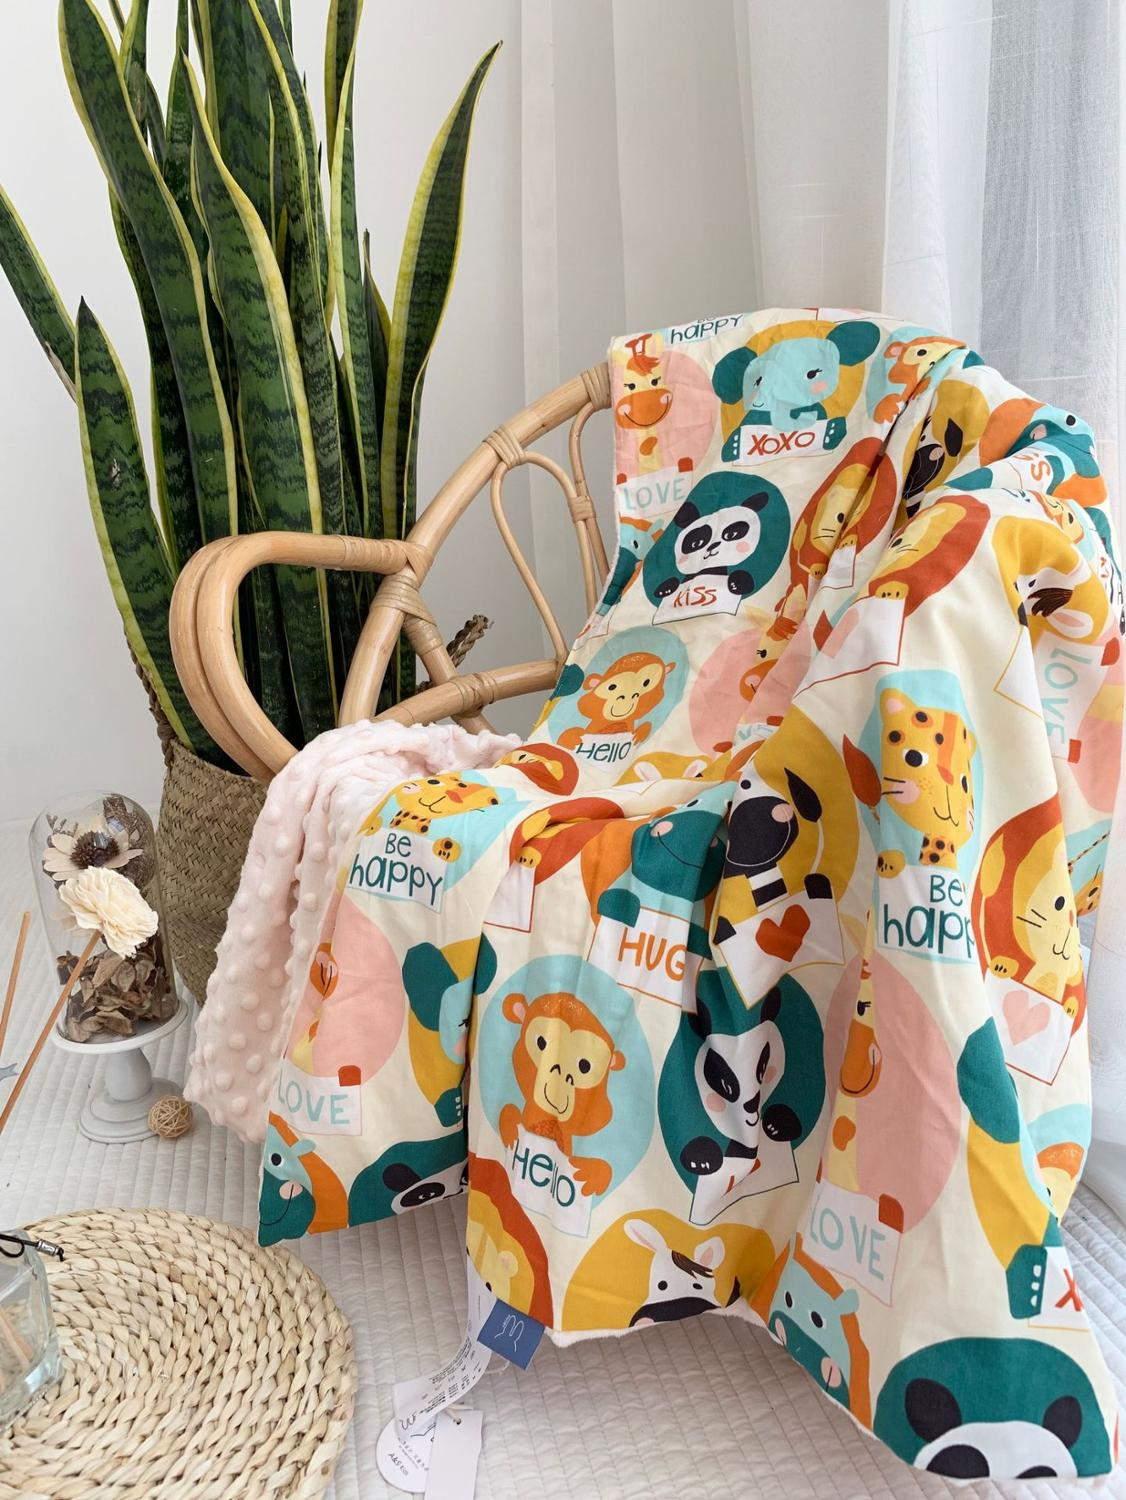 Baby Minky Baby Blanket Animal Thick Super Soft Flannel Blanket Newborn Toddler Stripped Swaddle Wrap Bedding Covers Bubbles